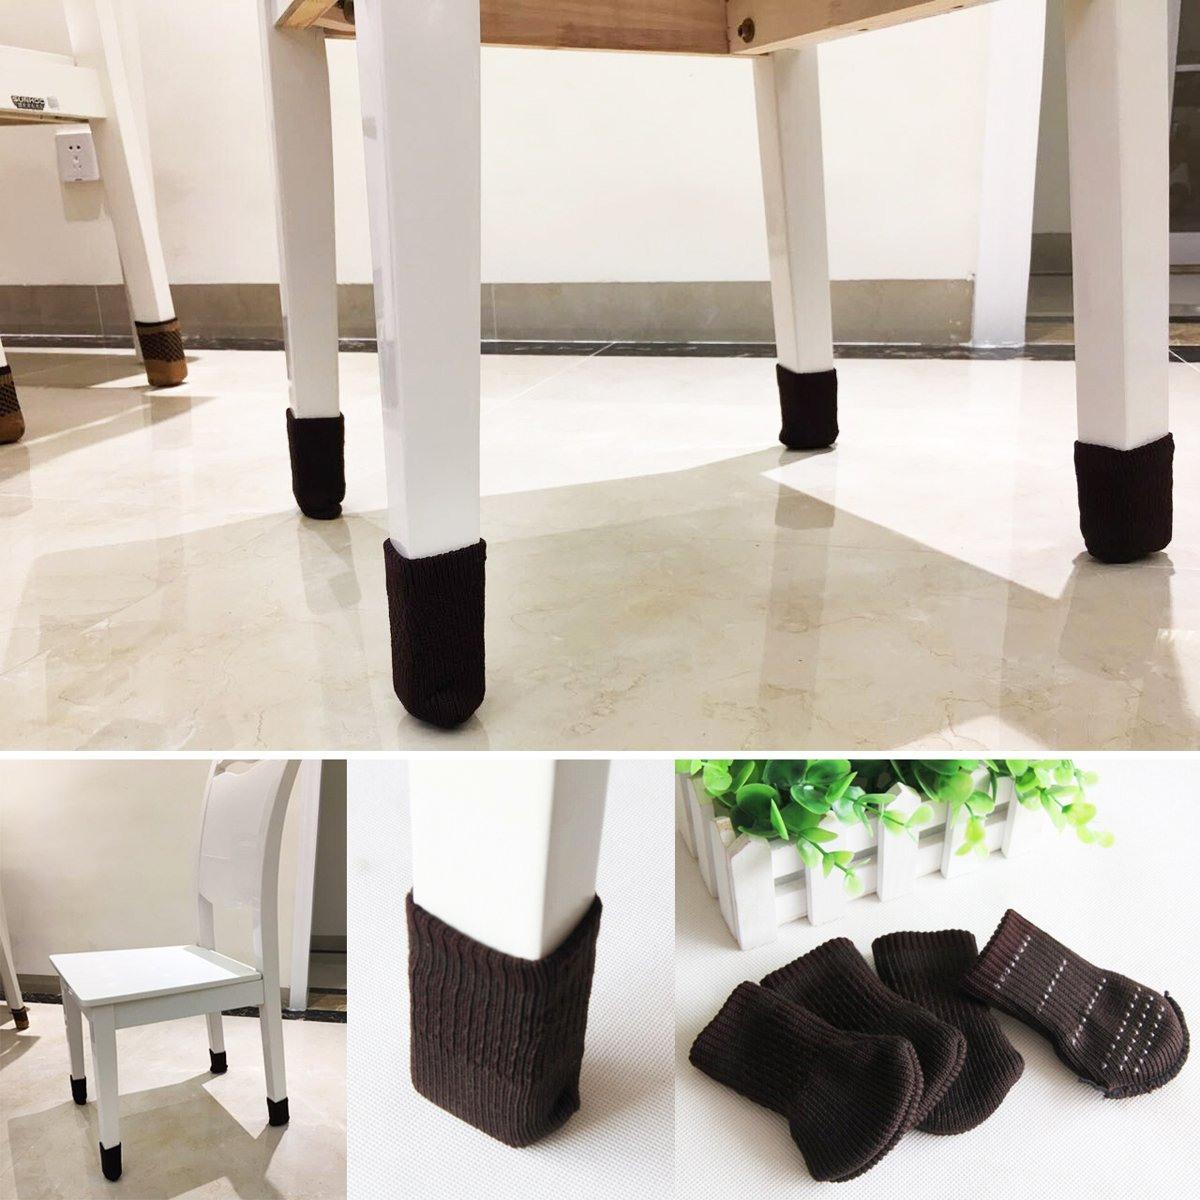 Furniture Socks To Prevent The Floor From Scratching